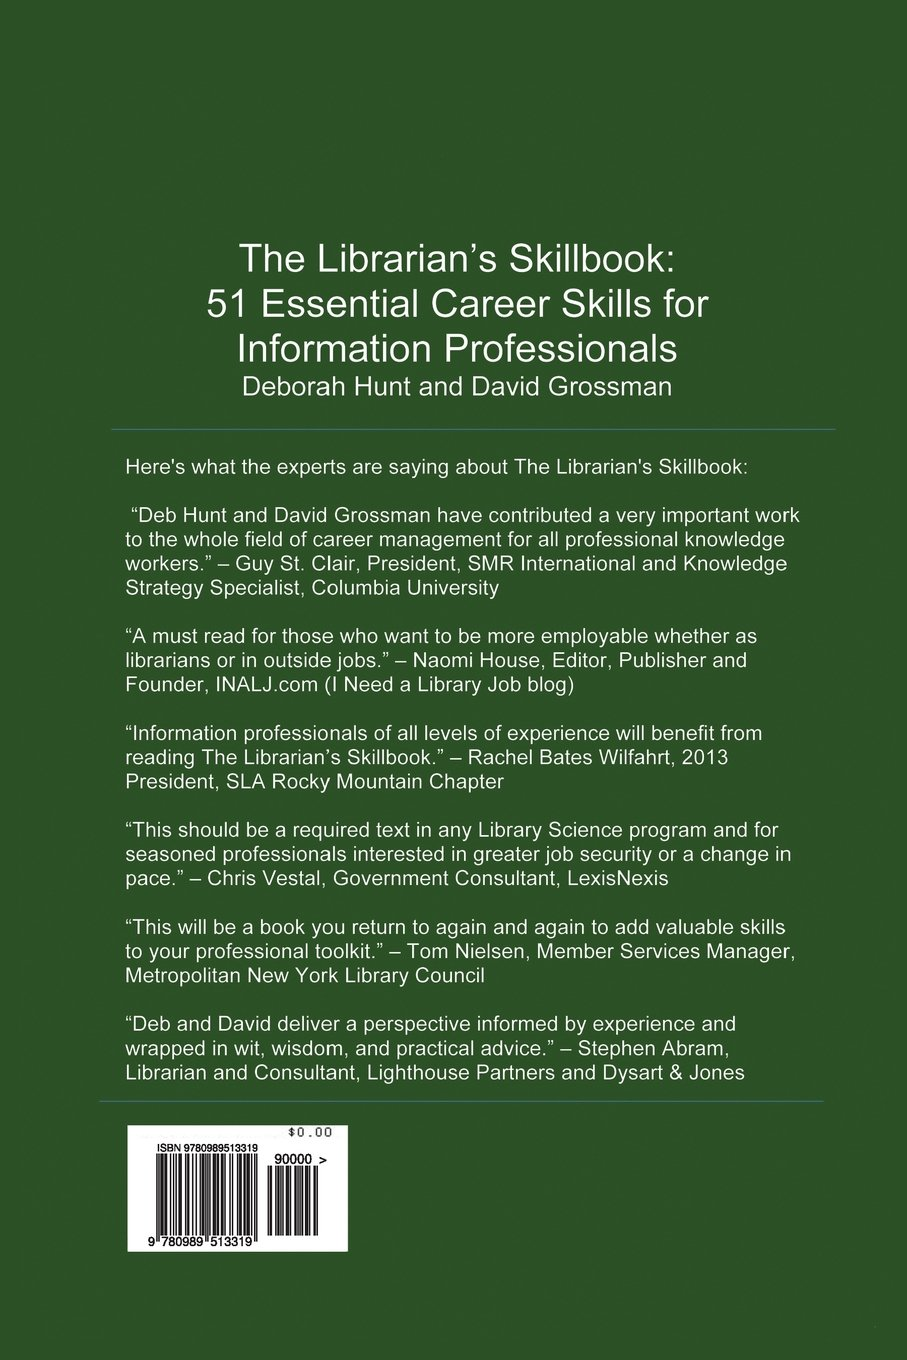 amazon com the librarian s skillbook 51 essential career skills amazon com the librarian s skillbook 51 essential career skills for information professionals 9780989513319 deborah hunt david grossman books